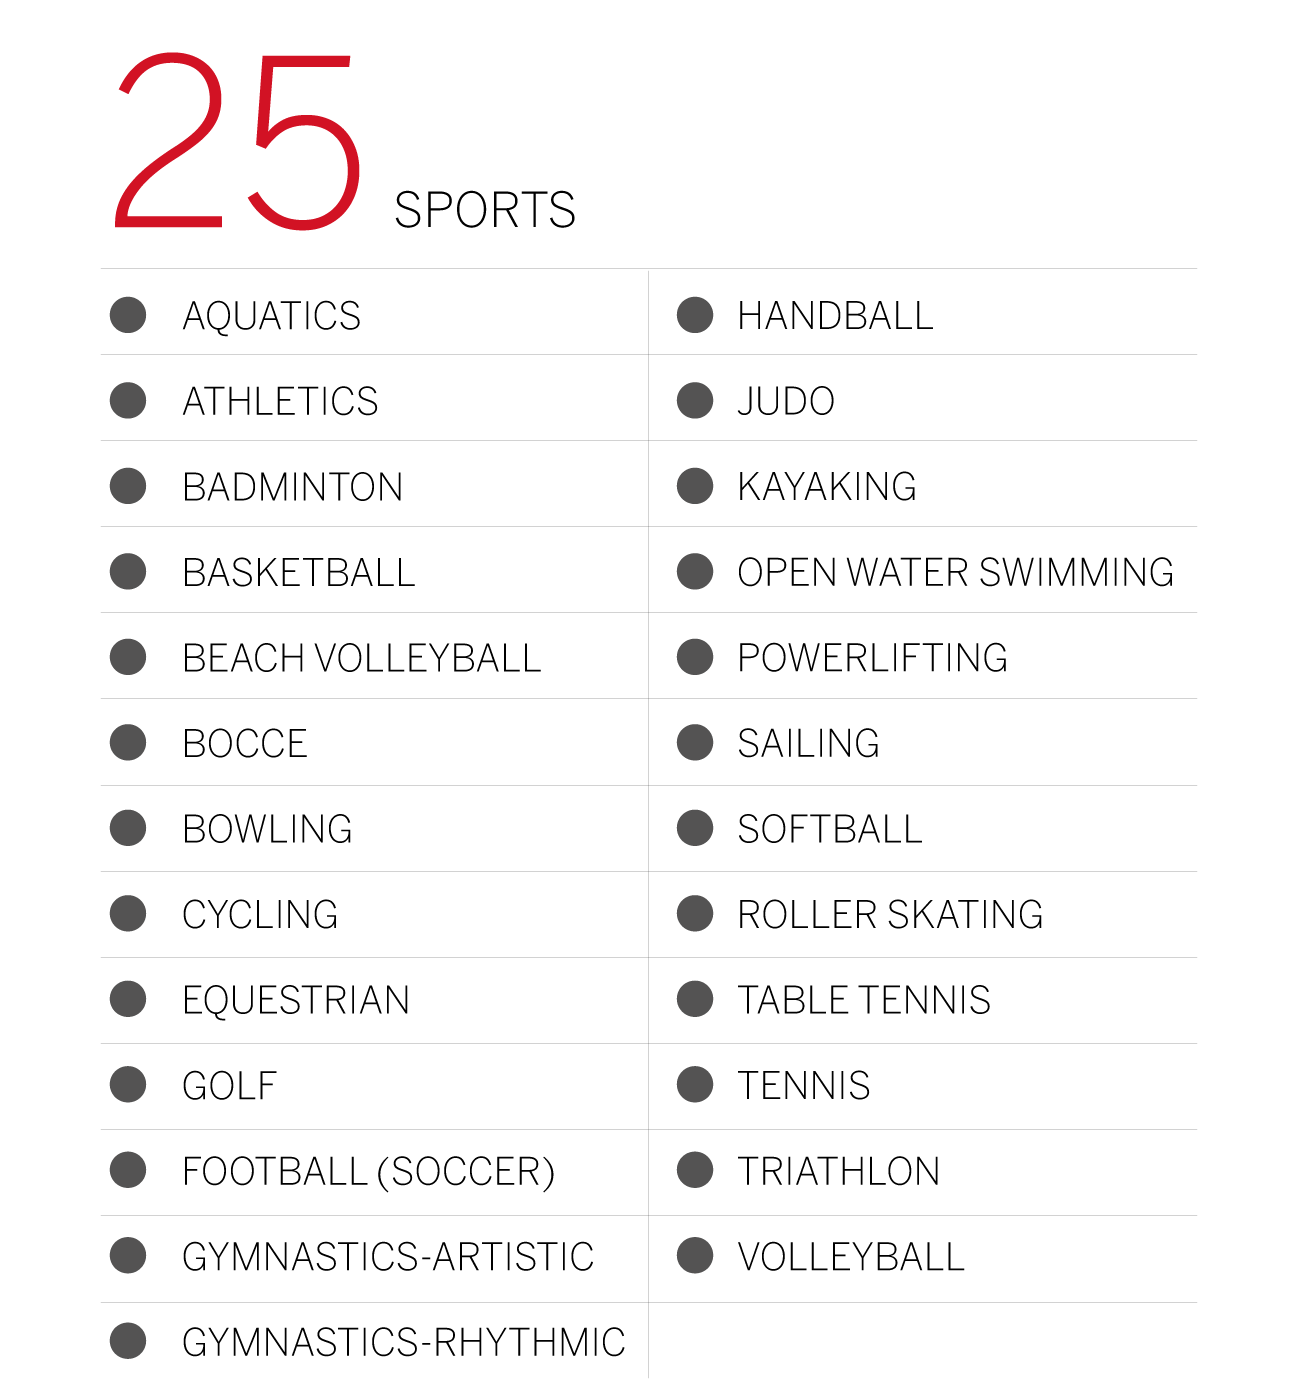 What sports are there 14